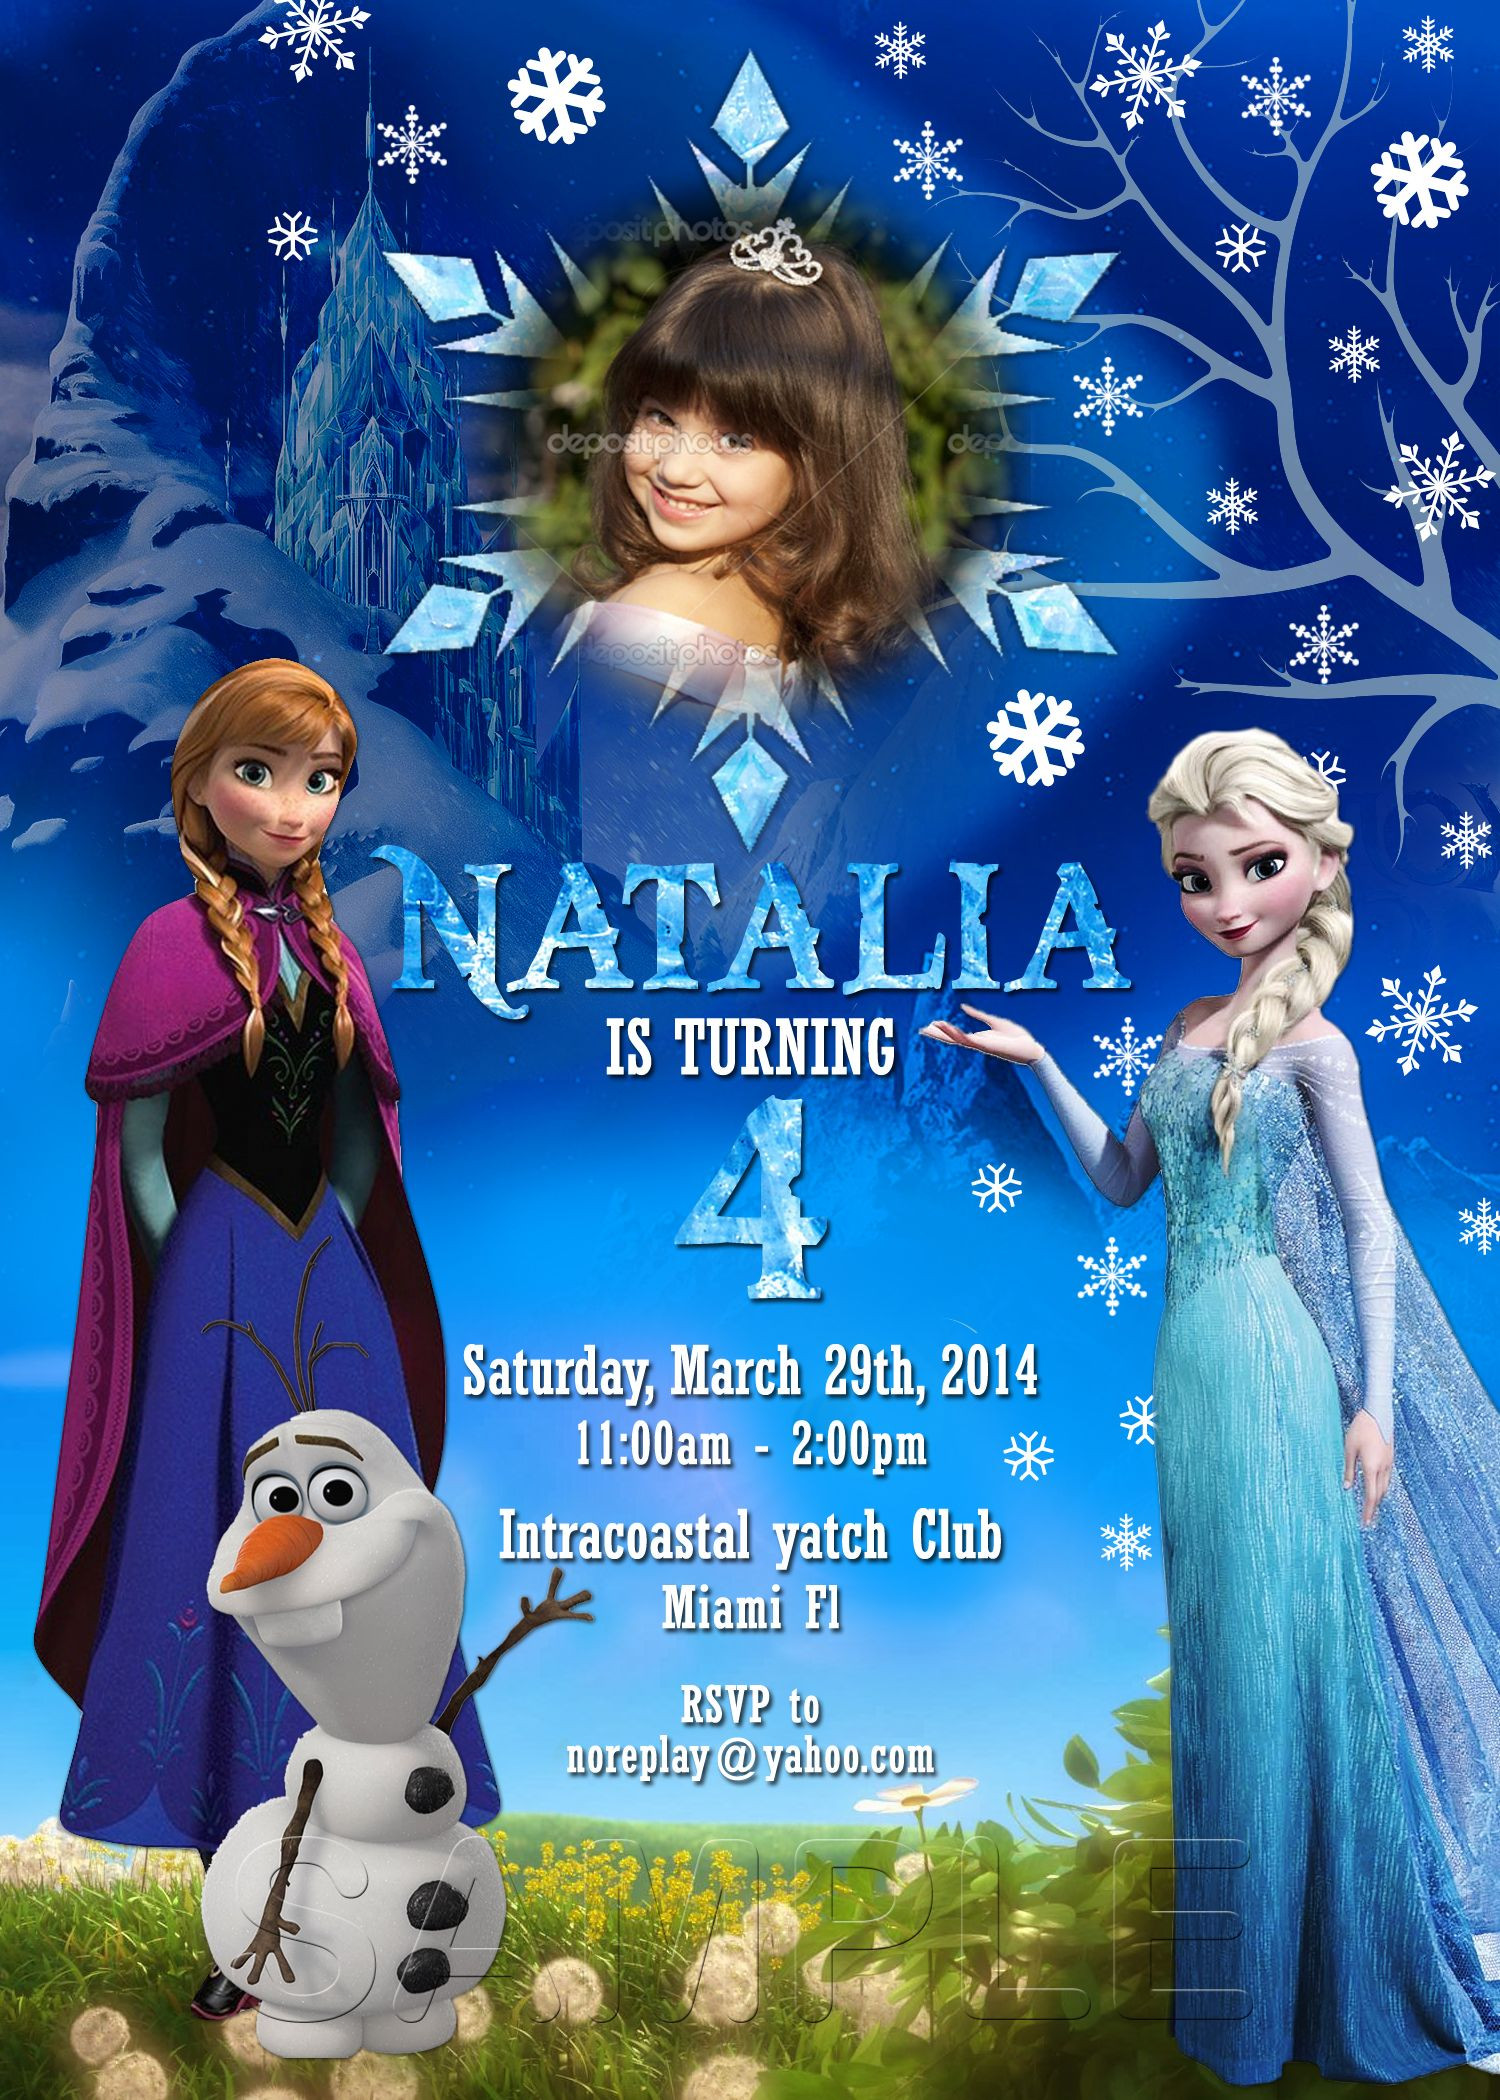 Frozen Invitations Printable Disney Frozen Birthday Frozen Invitation Frozen Party with